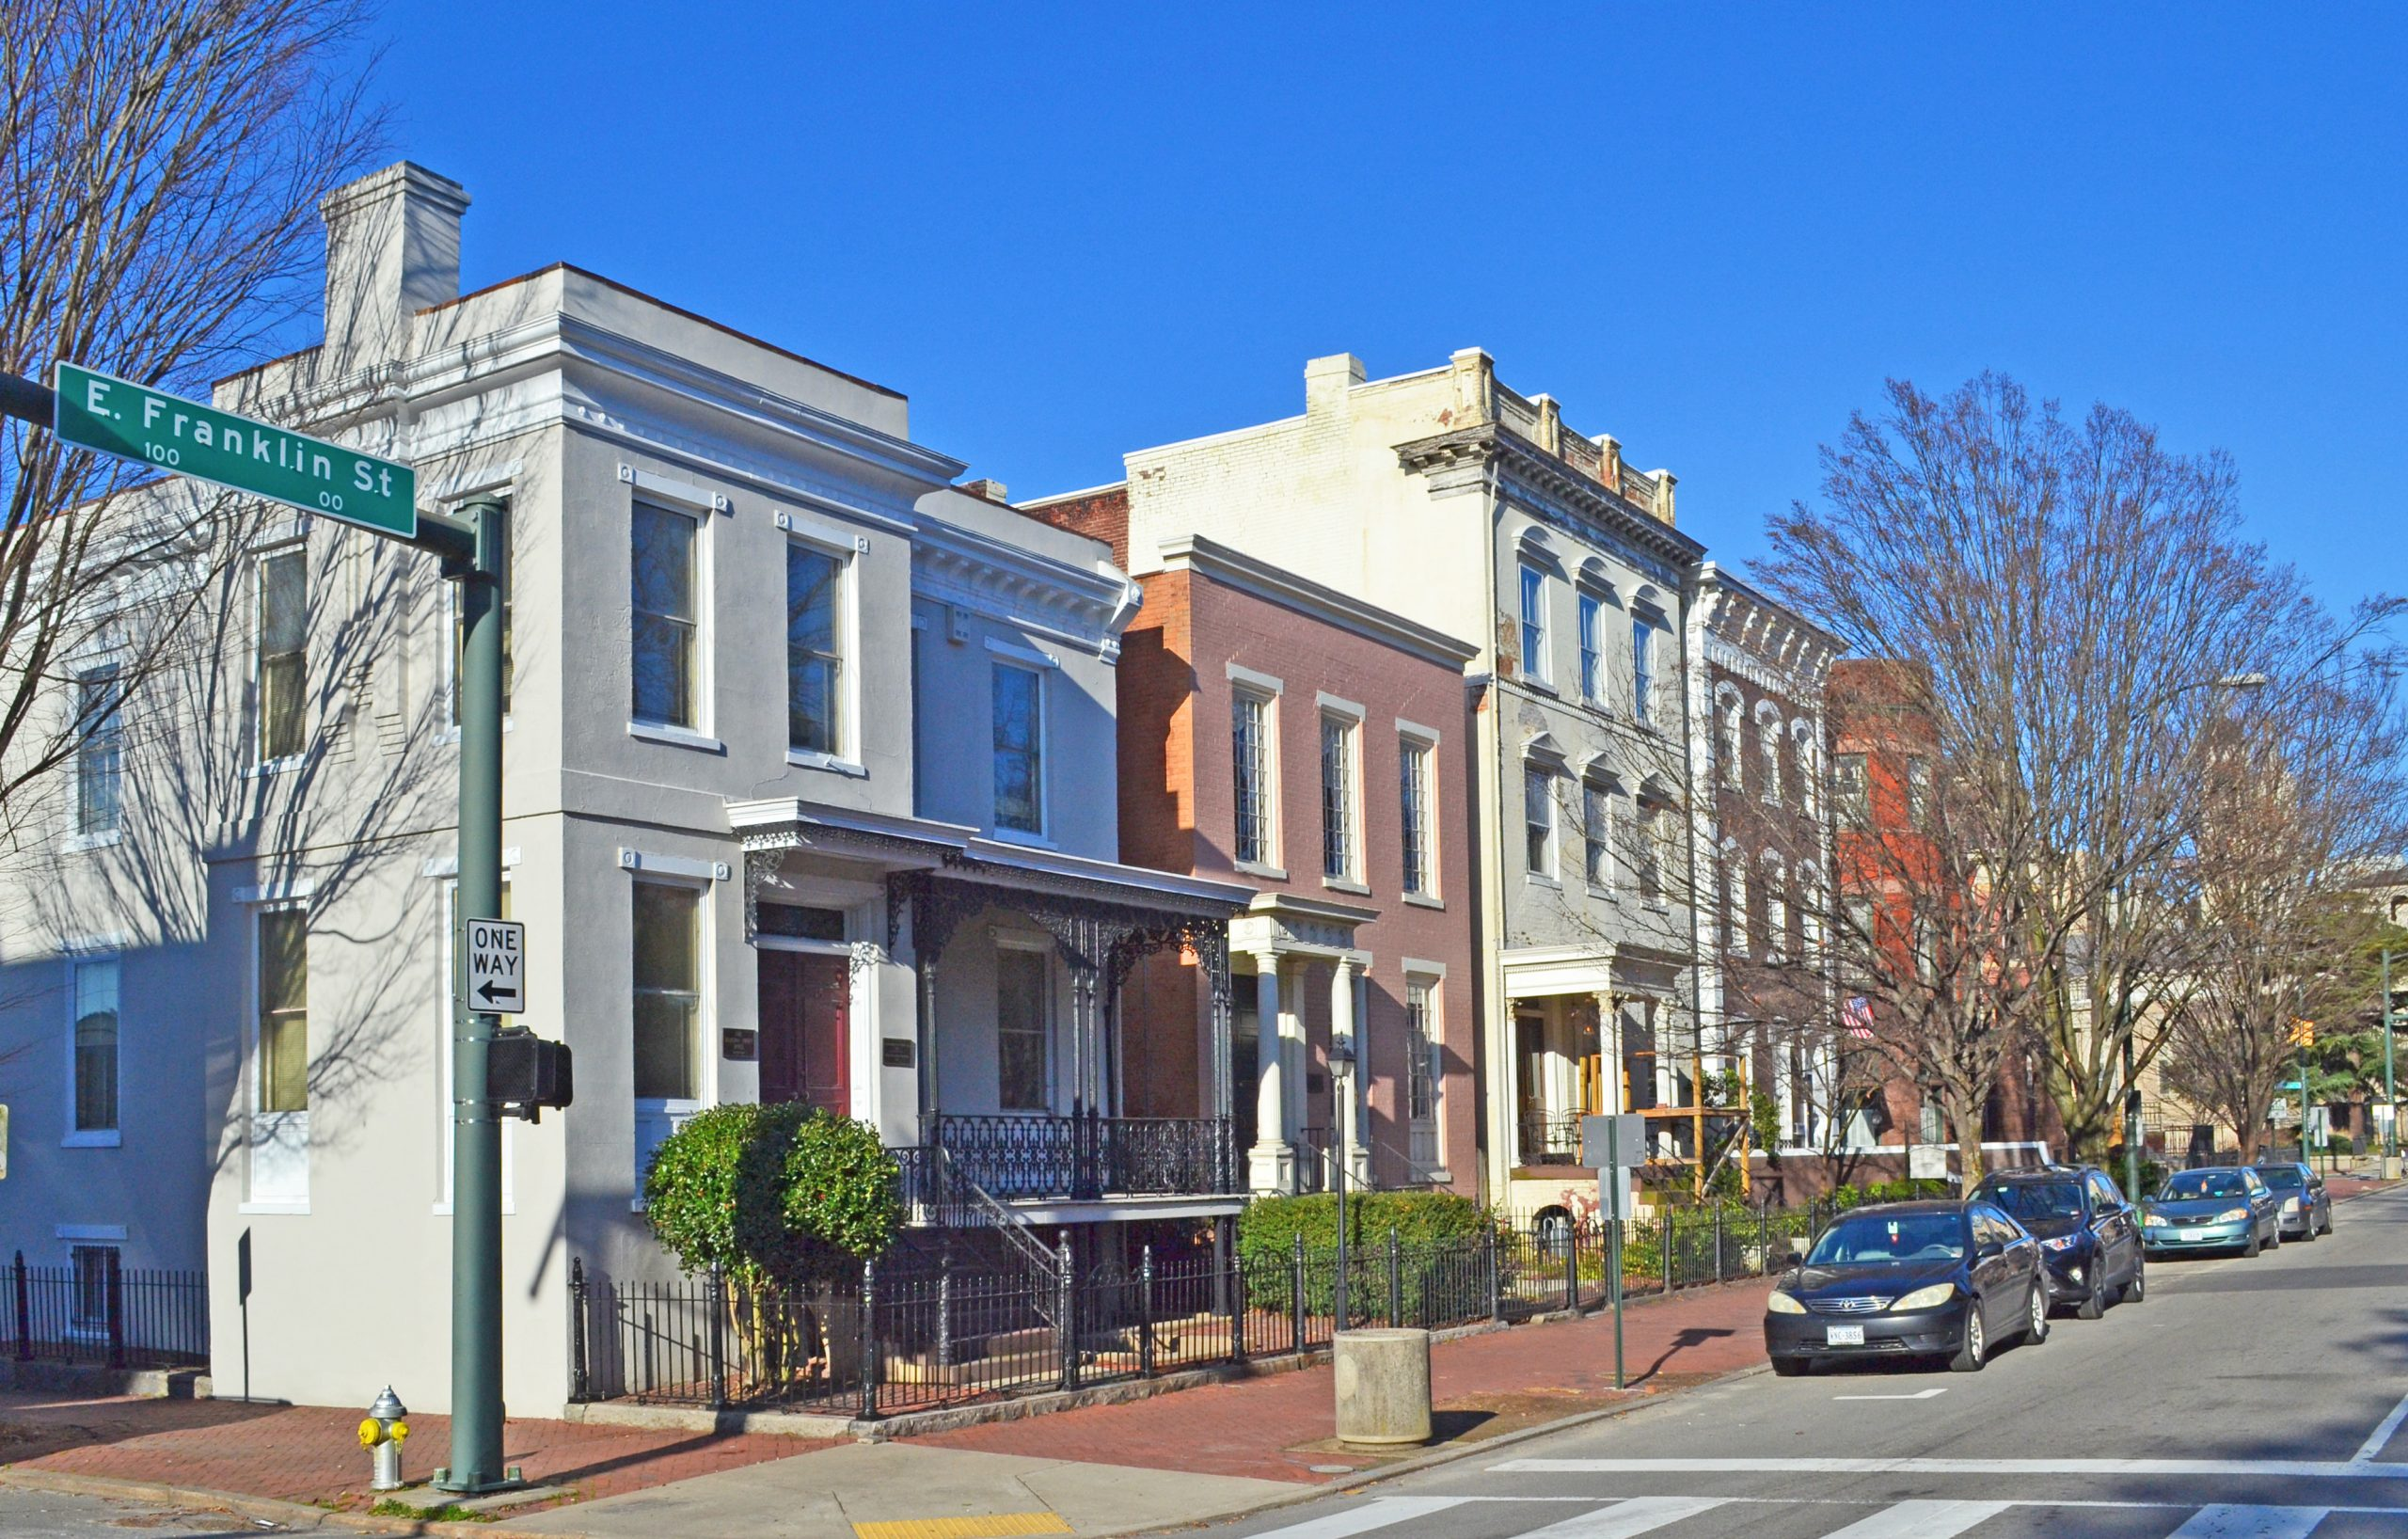 0-100 Block East Franklin Street Historic District